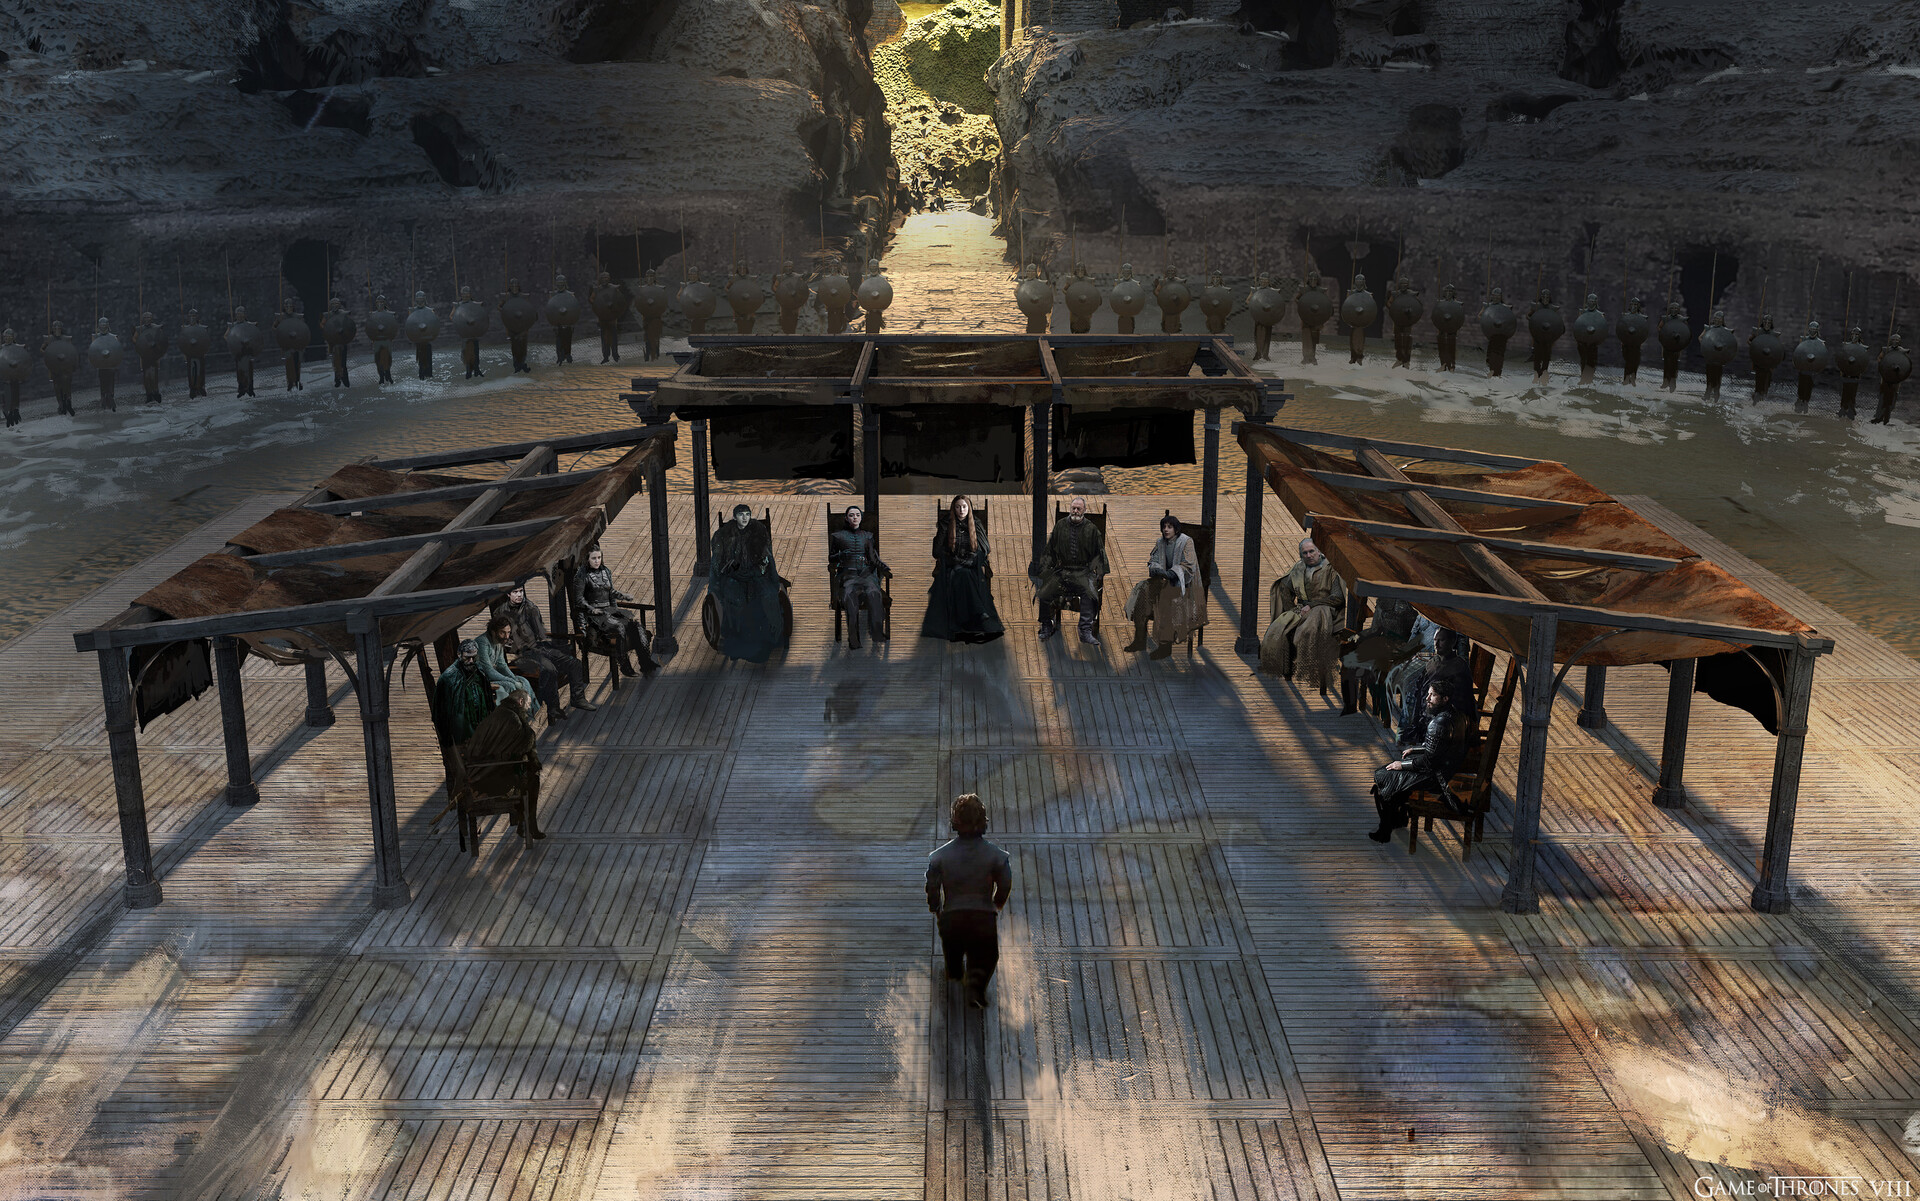 Dragonpit Council of Lords, early version using old Pergola design